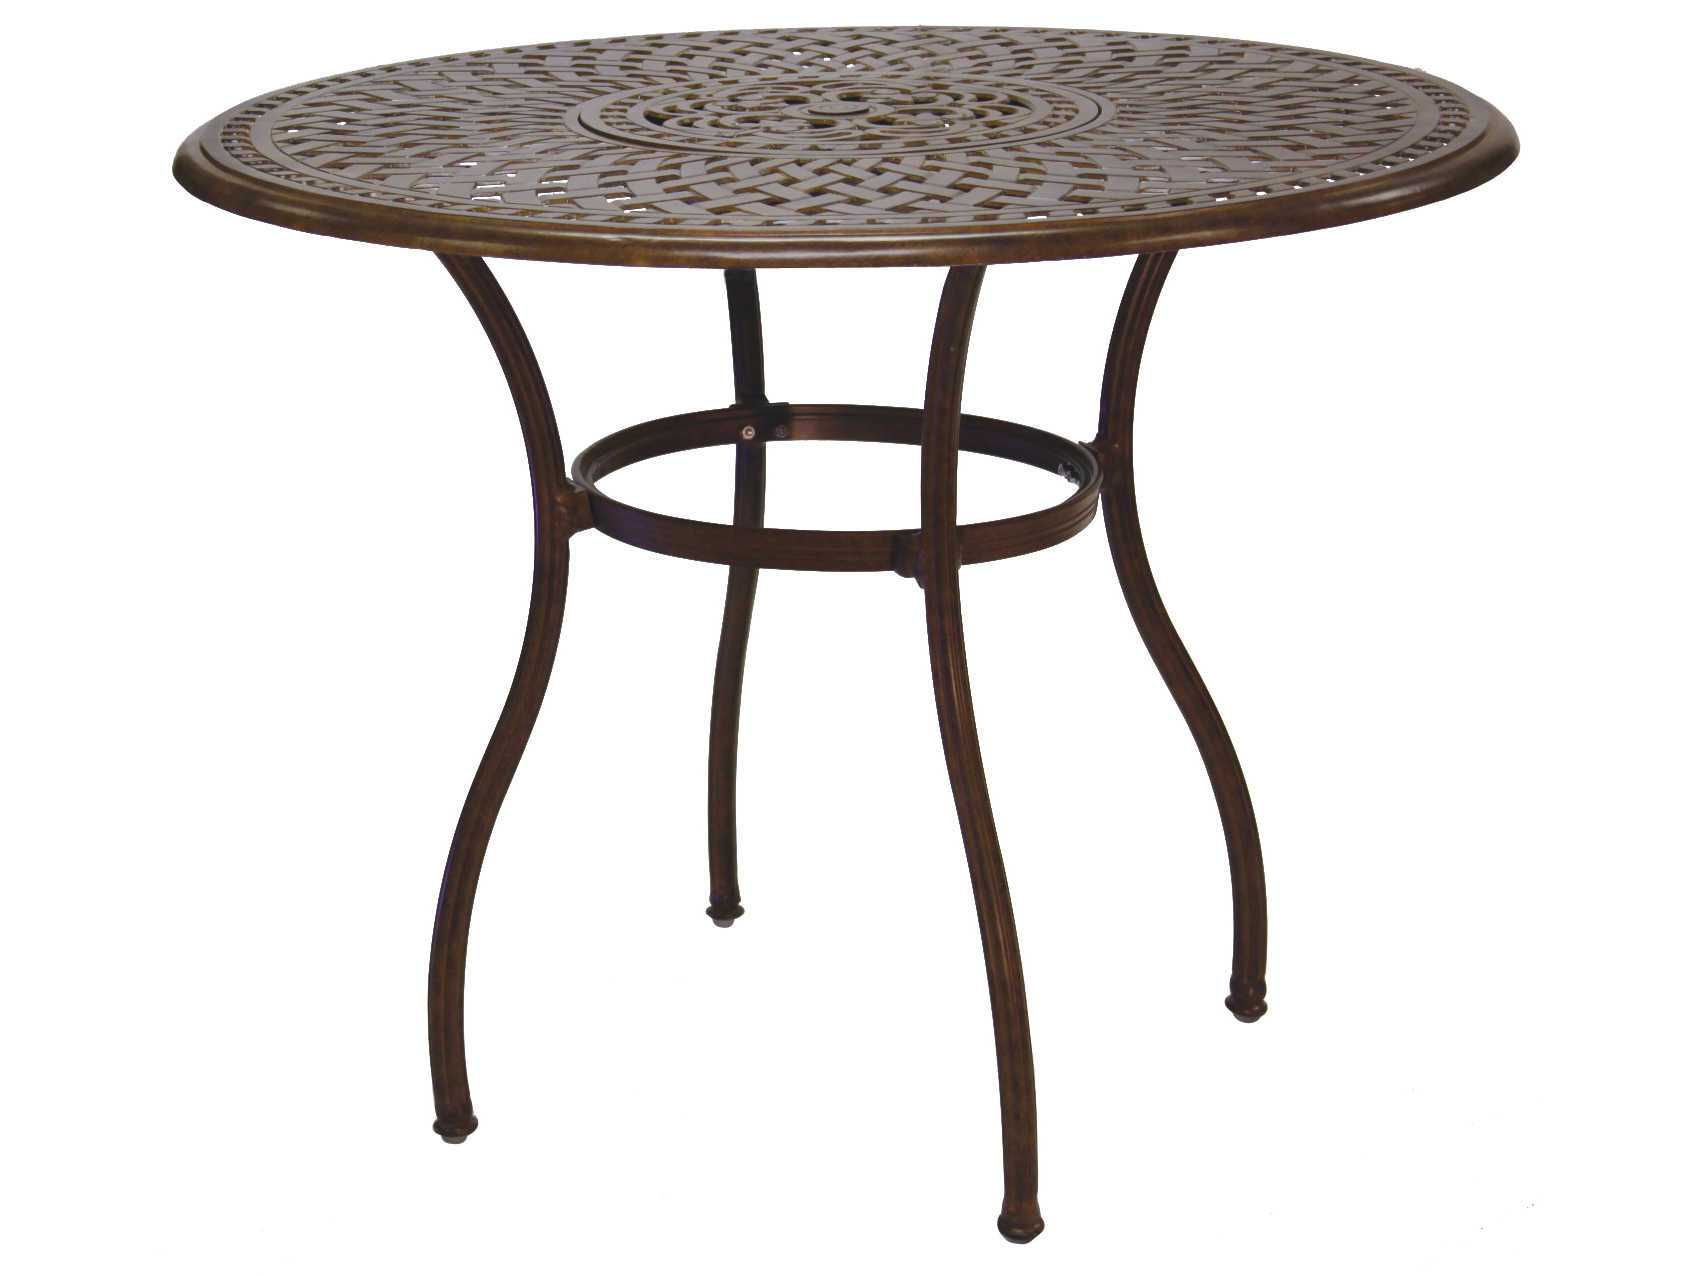 darlee outdoor living series 60 cast aluminum material 52 round bar table with ice bucket. Black Bedroom Furniture Sets. Home Design Ideas